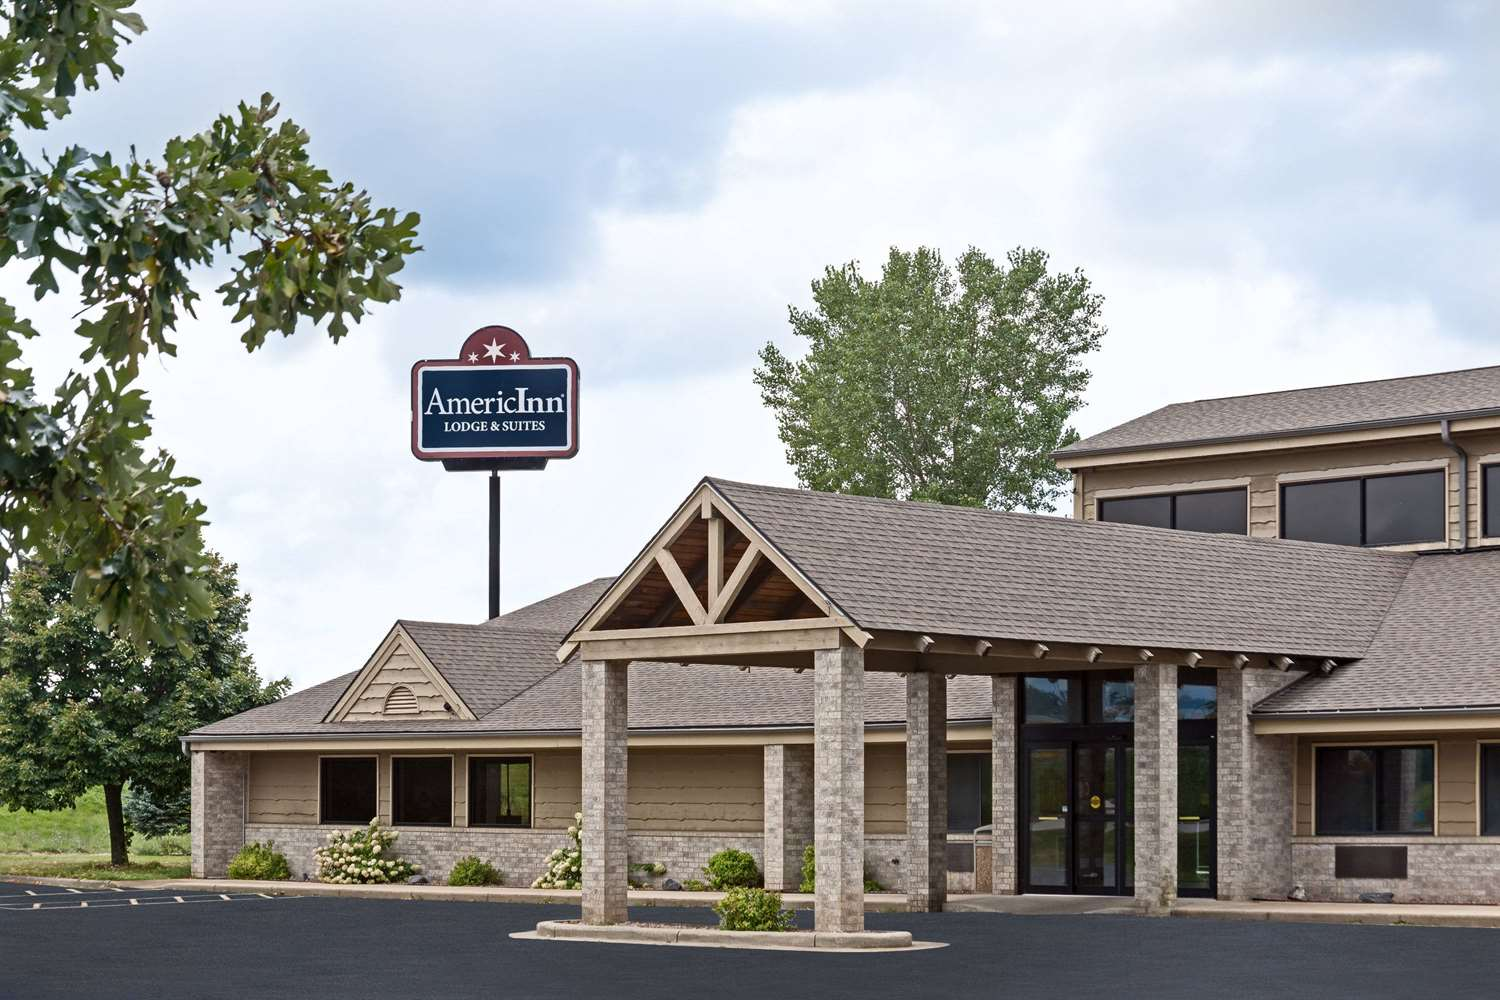 Americinn Lodge Suites Tomah Wi See Discounts